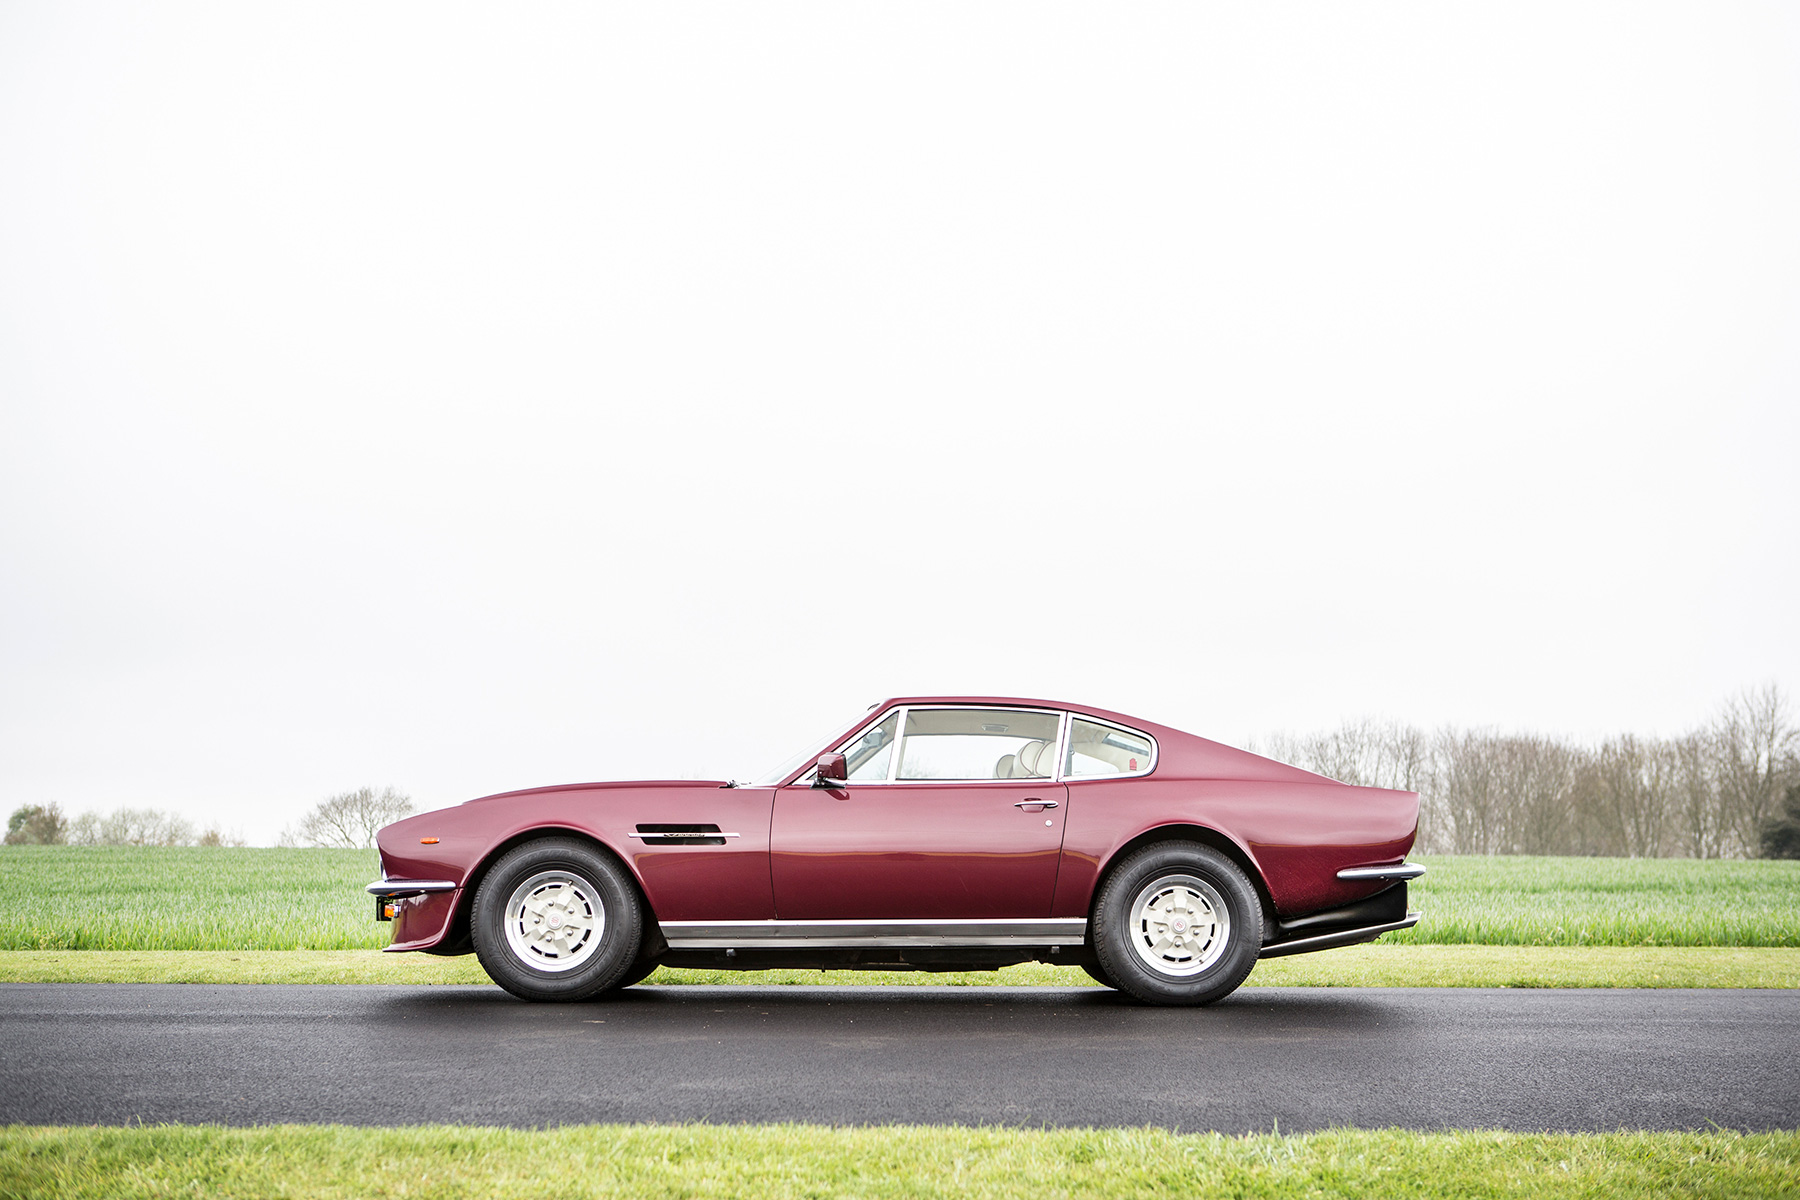 Highlights From the Upcoming Aston Martin Sale